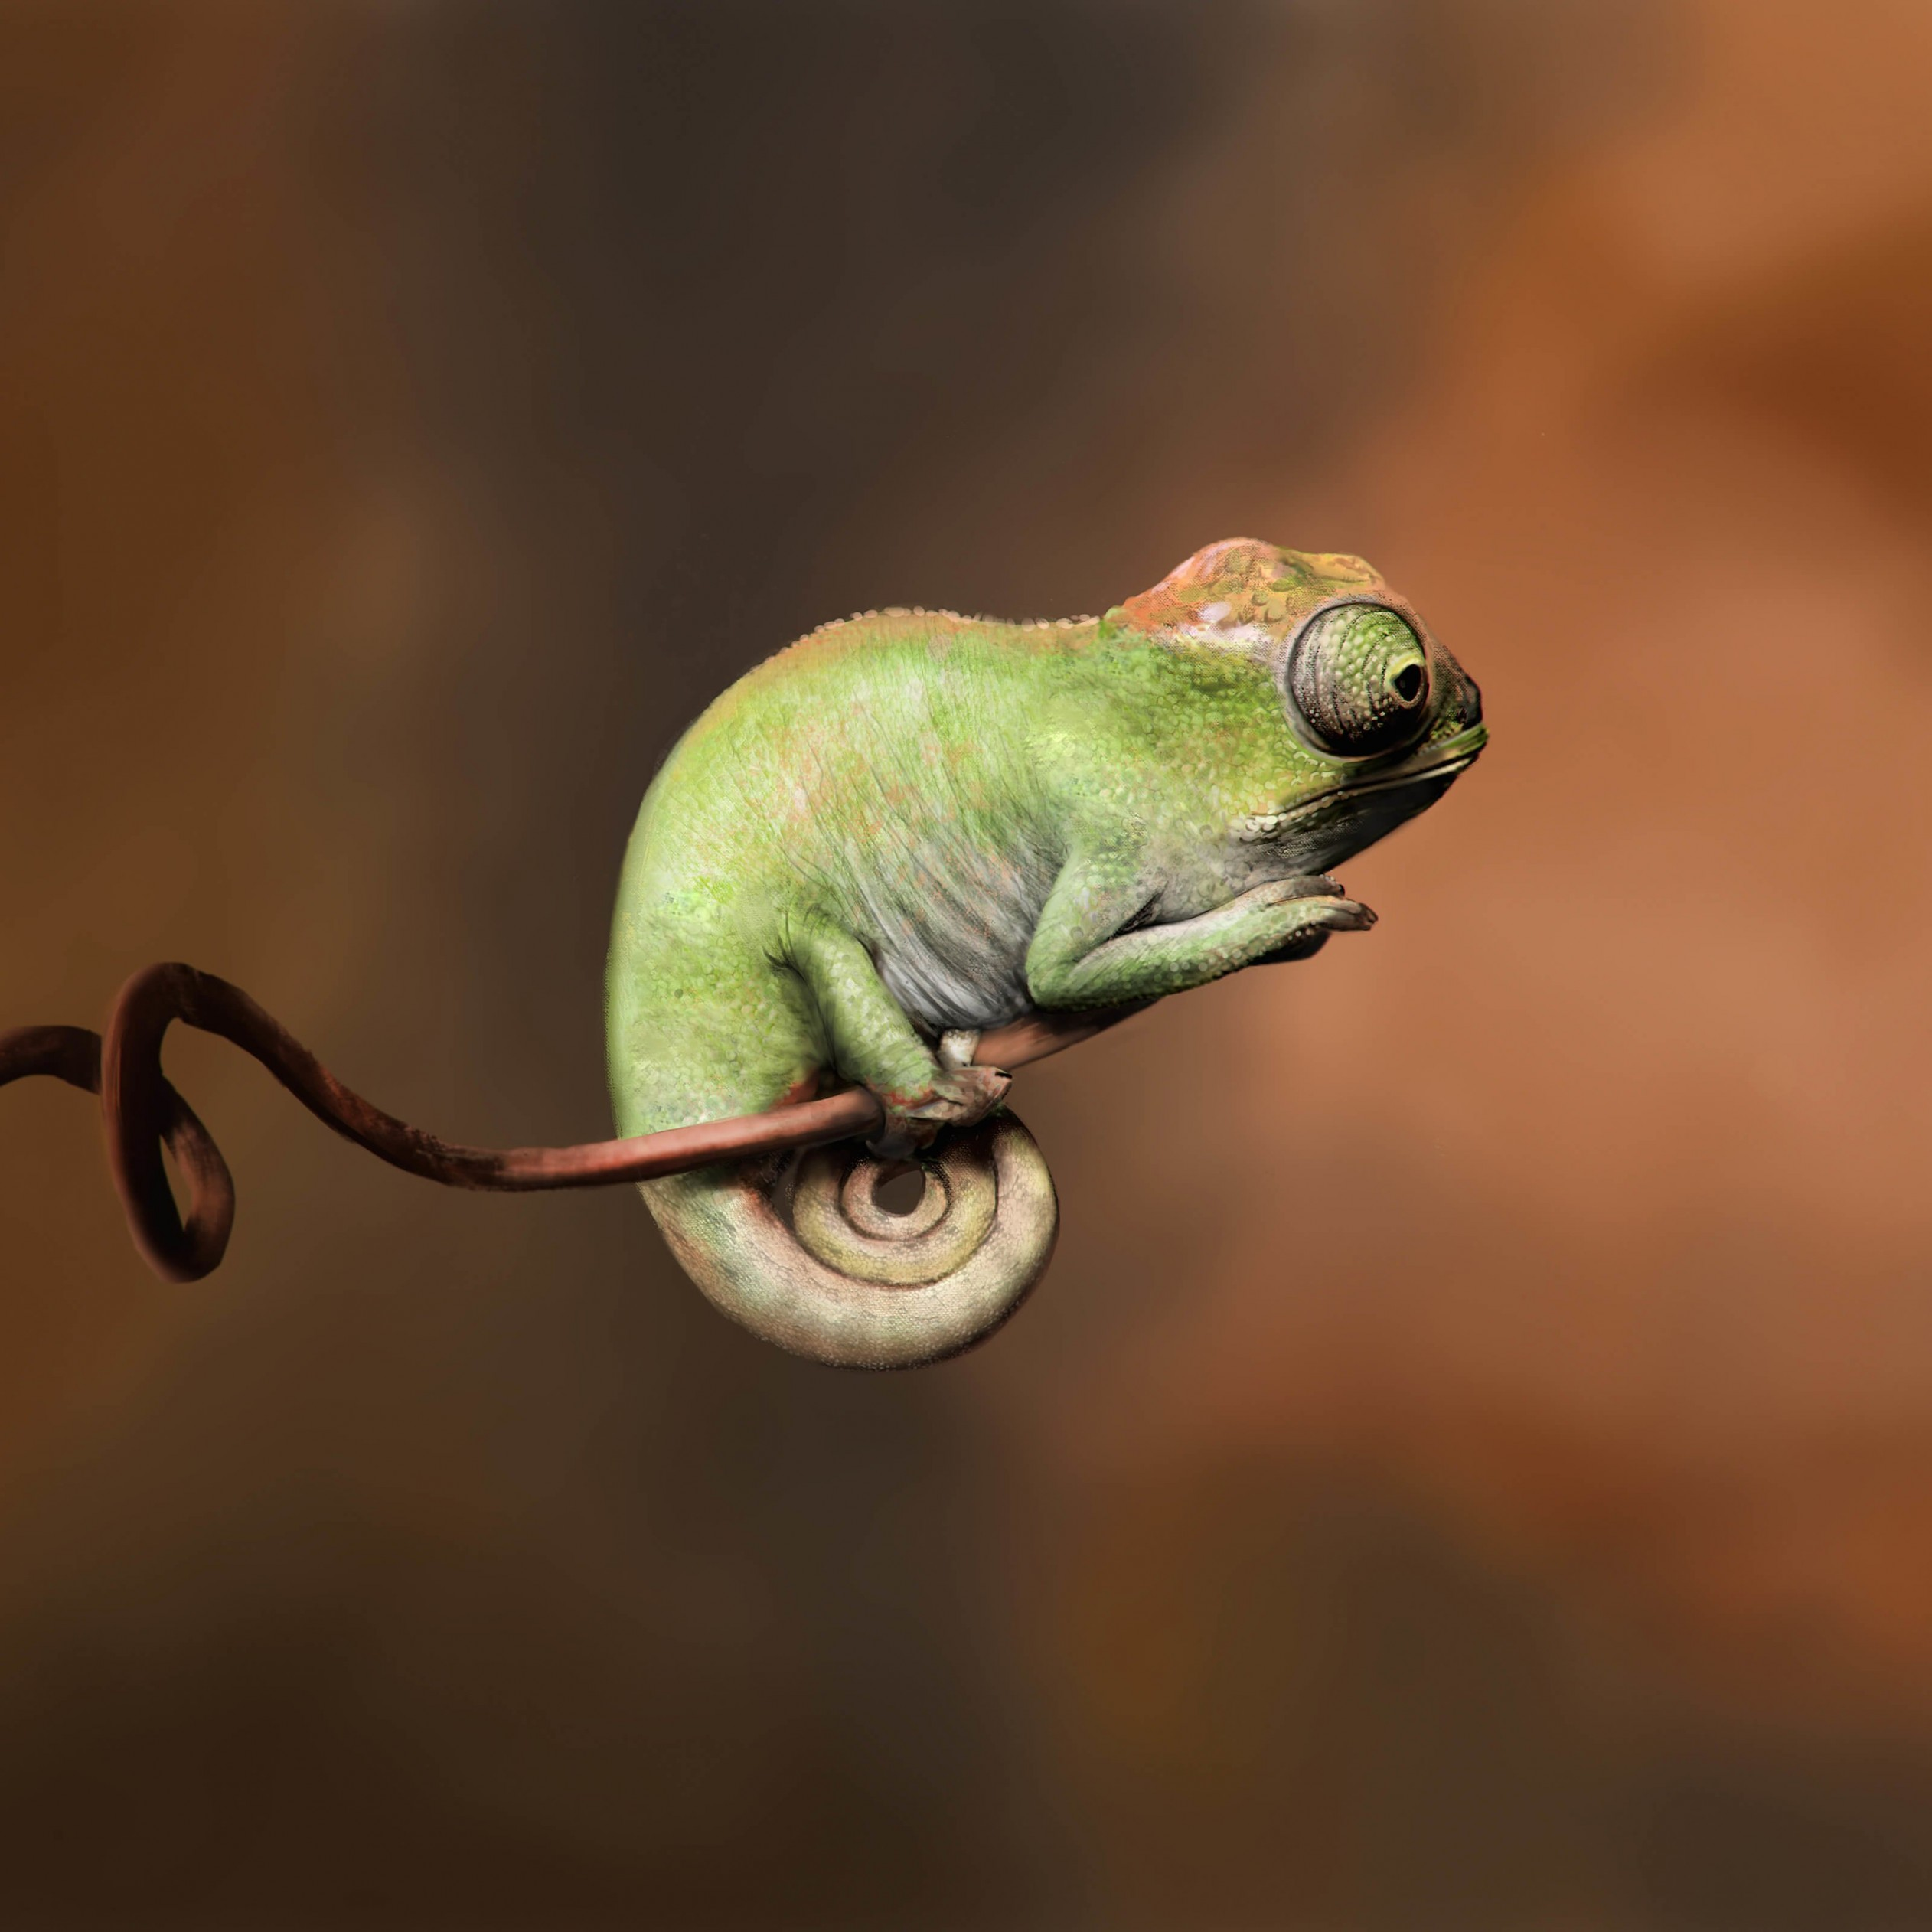 Baby Chameleon Perching On a Twisted Branch Wallpaper for Apple iPad 3